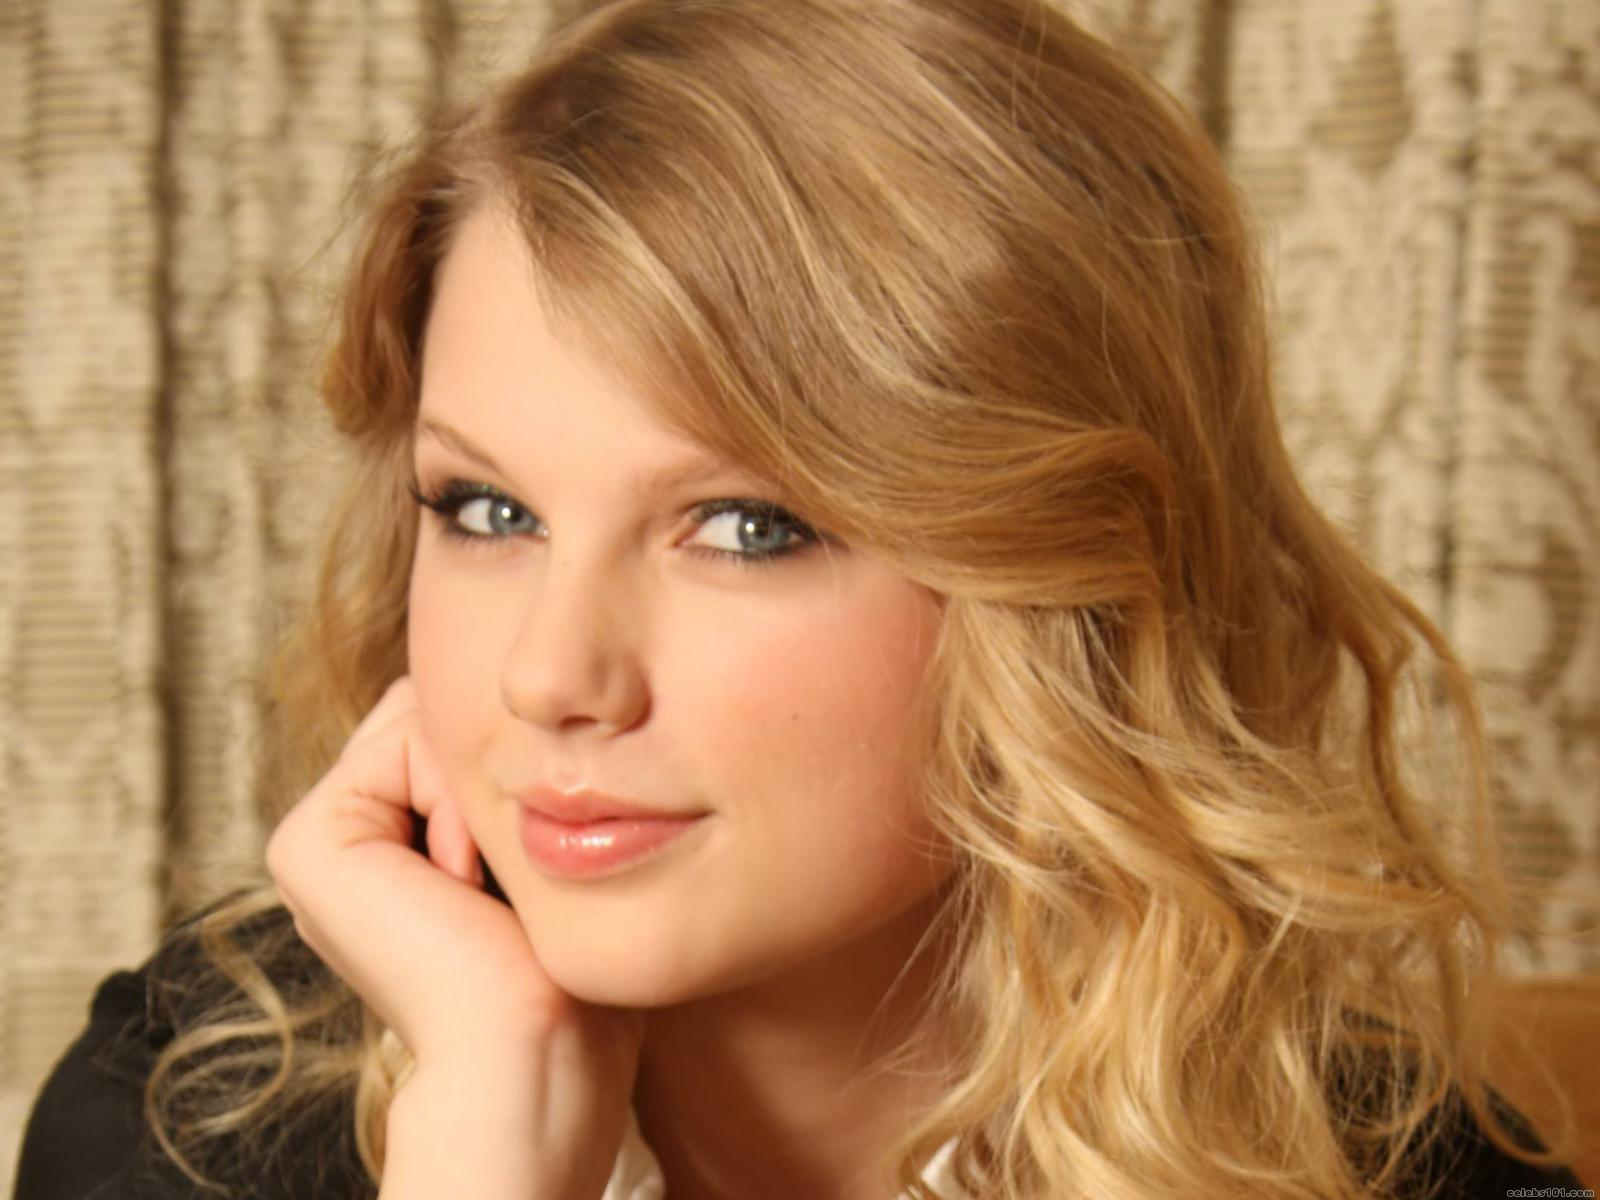 Taylor Swift Wallpaper Demi Lovato Ringtone